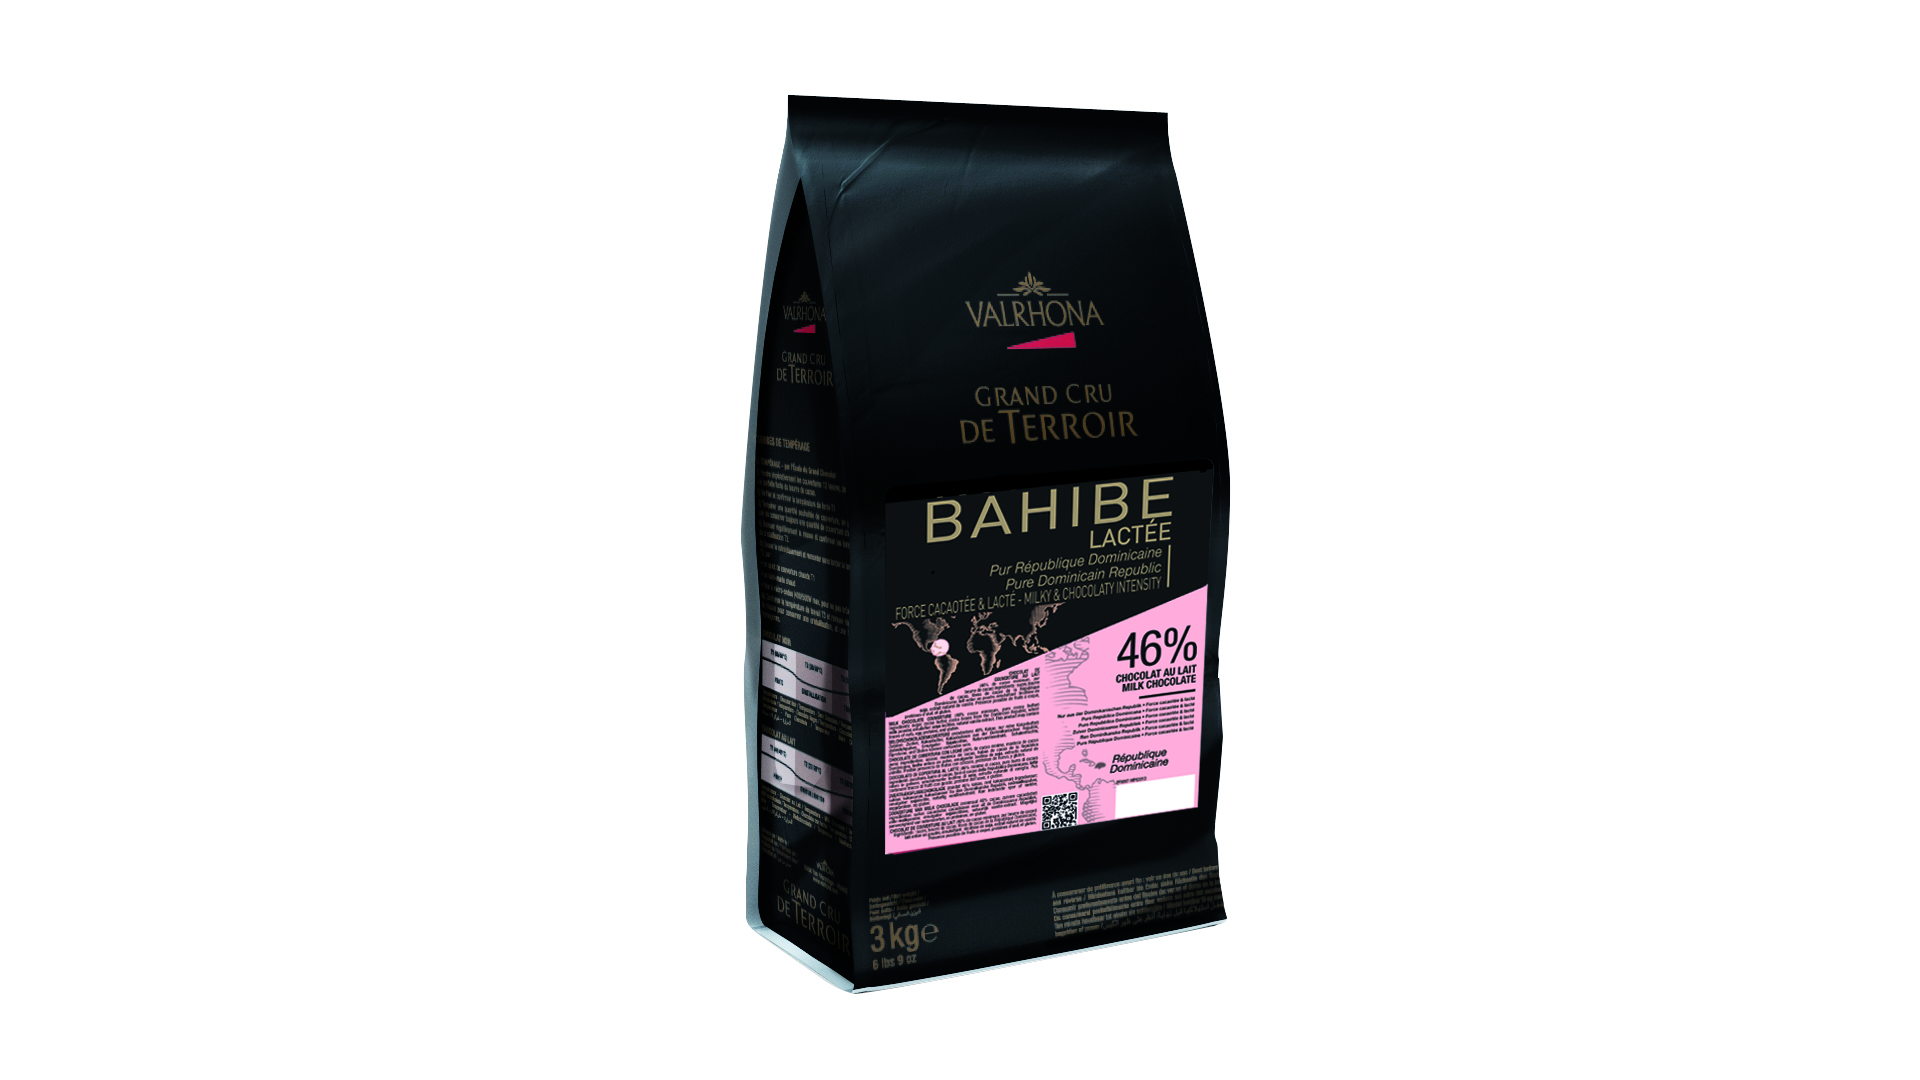 Valrhona Bahibe 46% Dark Milk Chocolate Feves  #9997